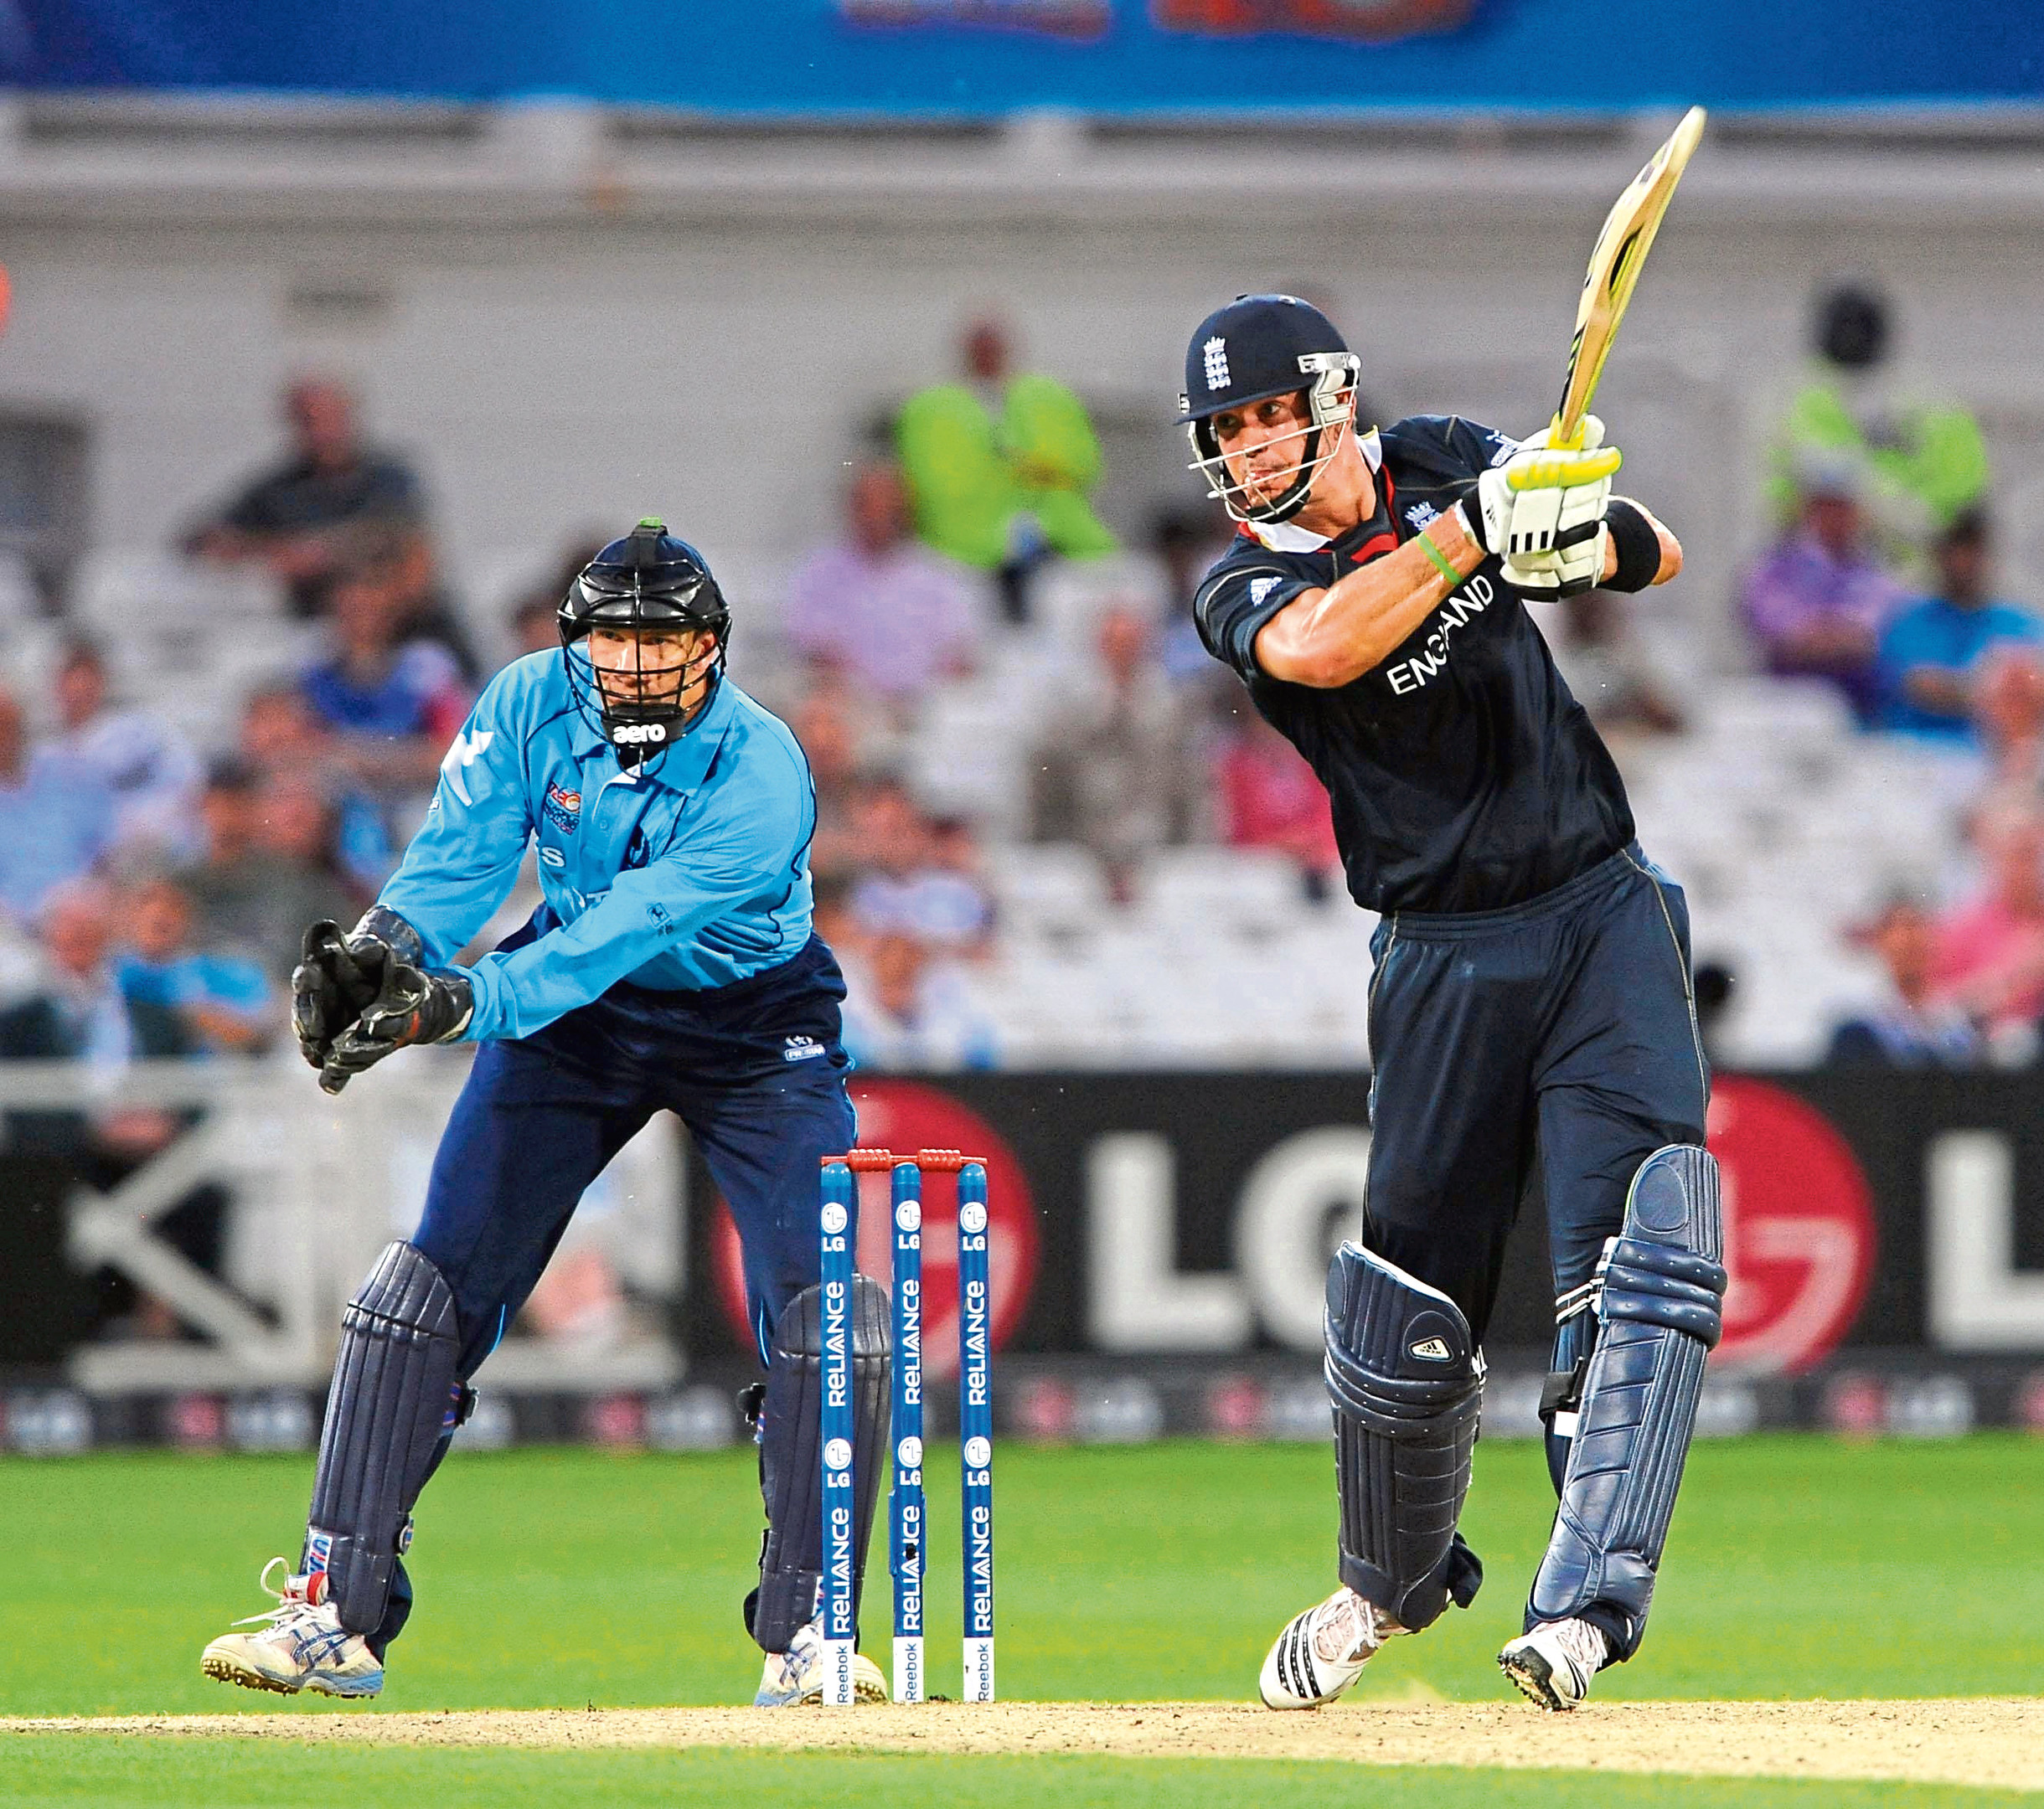 Scotland's Colin Smith against England at Trent Bridge, Nottingham, 2009.